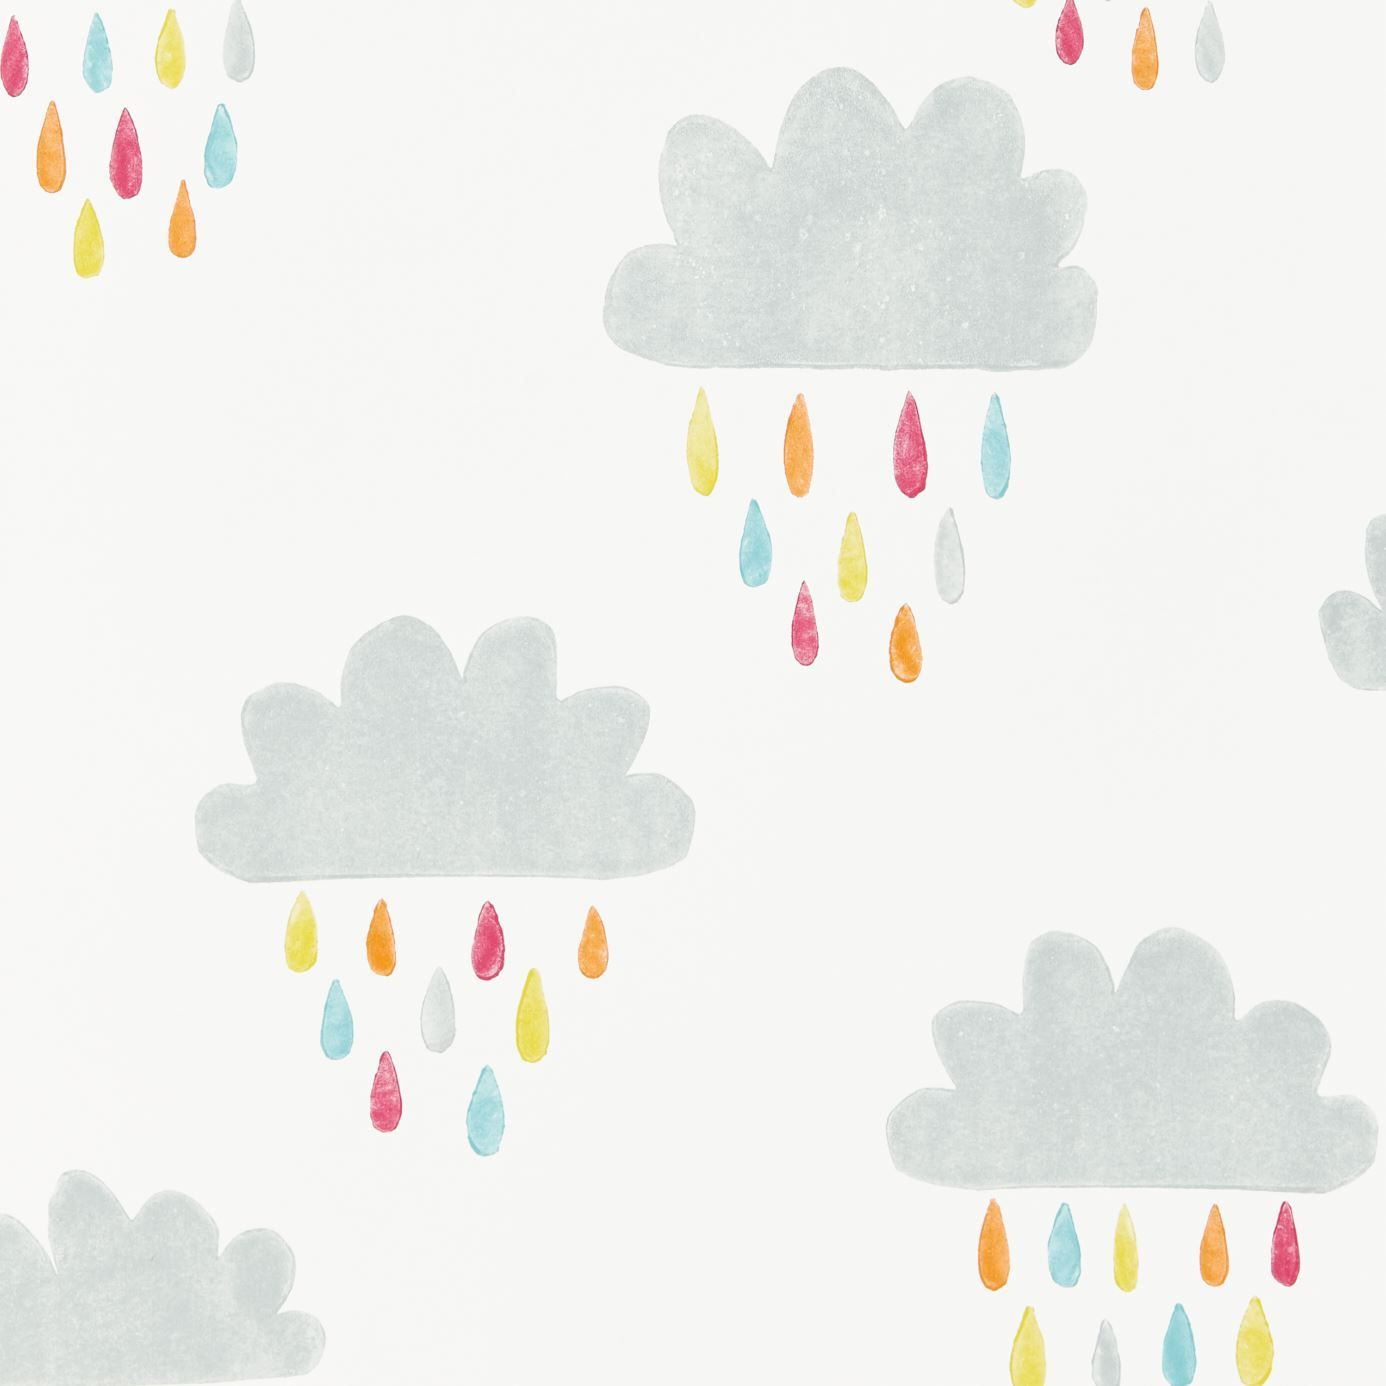 products  scion  fashionled stylish and modern fabrics and  - grey and white kids' cloud wallpaper april showers citrus lagoon and poppywallpaper by scion